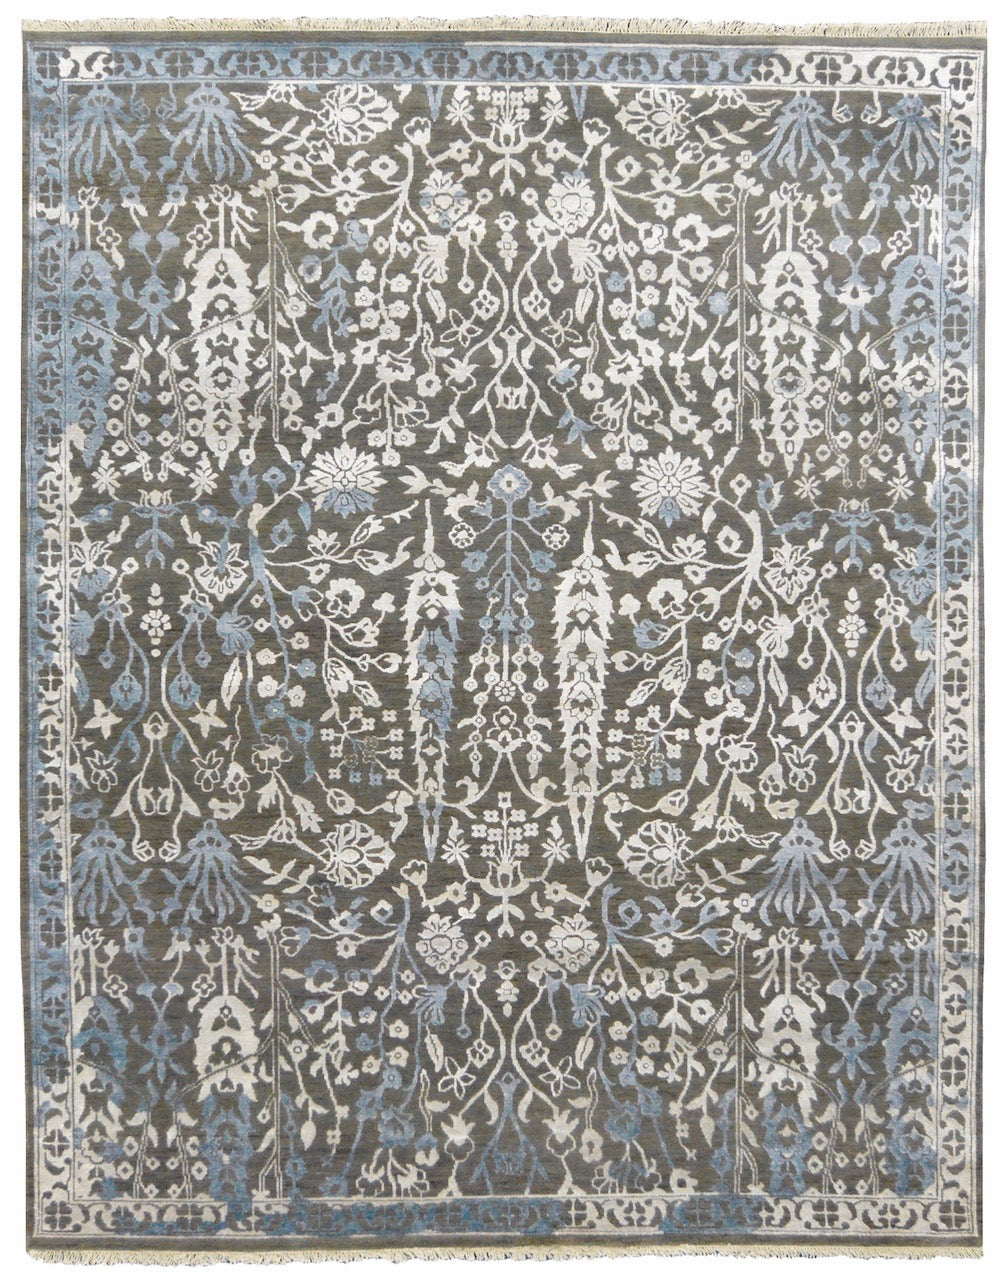 refined carpet | rugs area rugs online carpet transitional area rugs rogue collection gargoyle restoration hardware online rug store orange county affordable area rugs 8 x 10